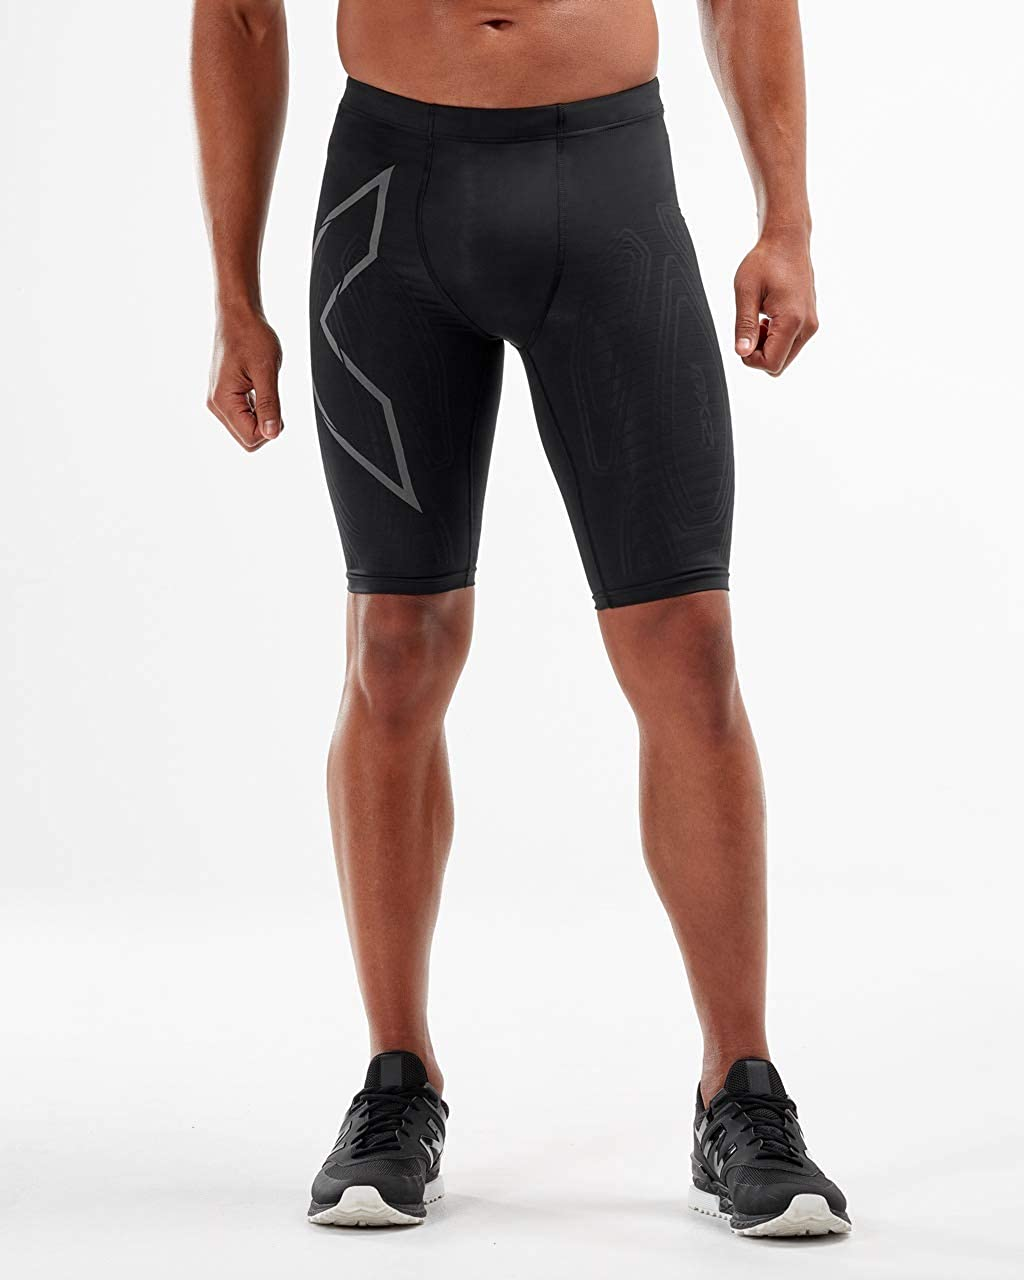 2XU Men's MCS Cheap mail New sales order specialty store Run Short Compression